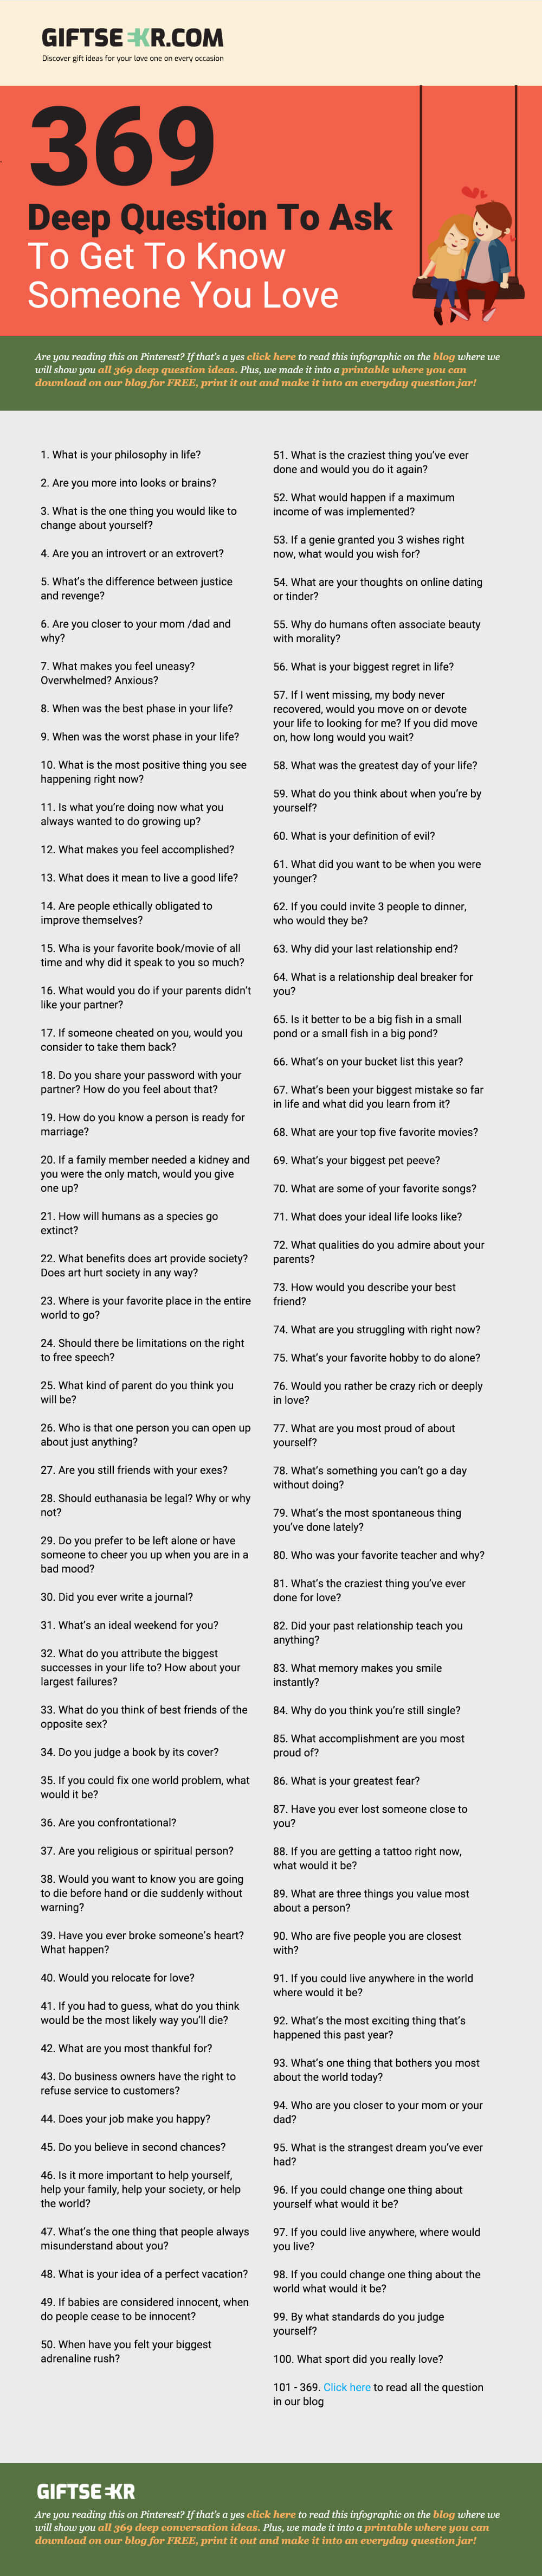 369 Deep Question To Ask To Get To Know Someone